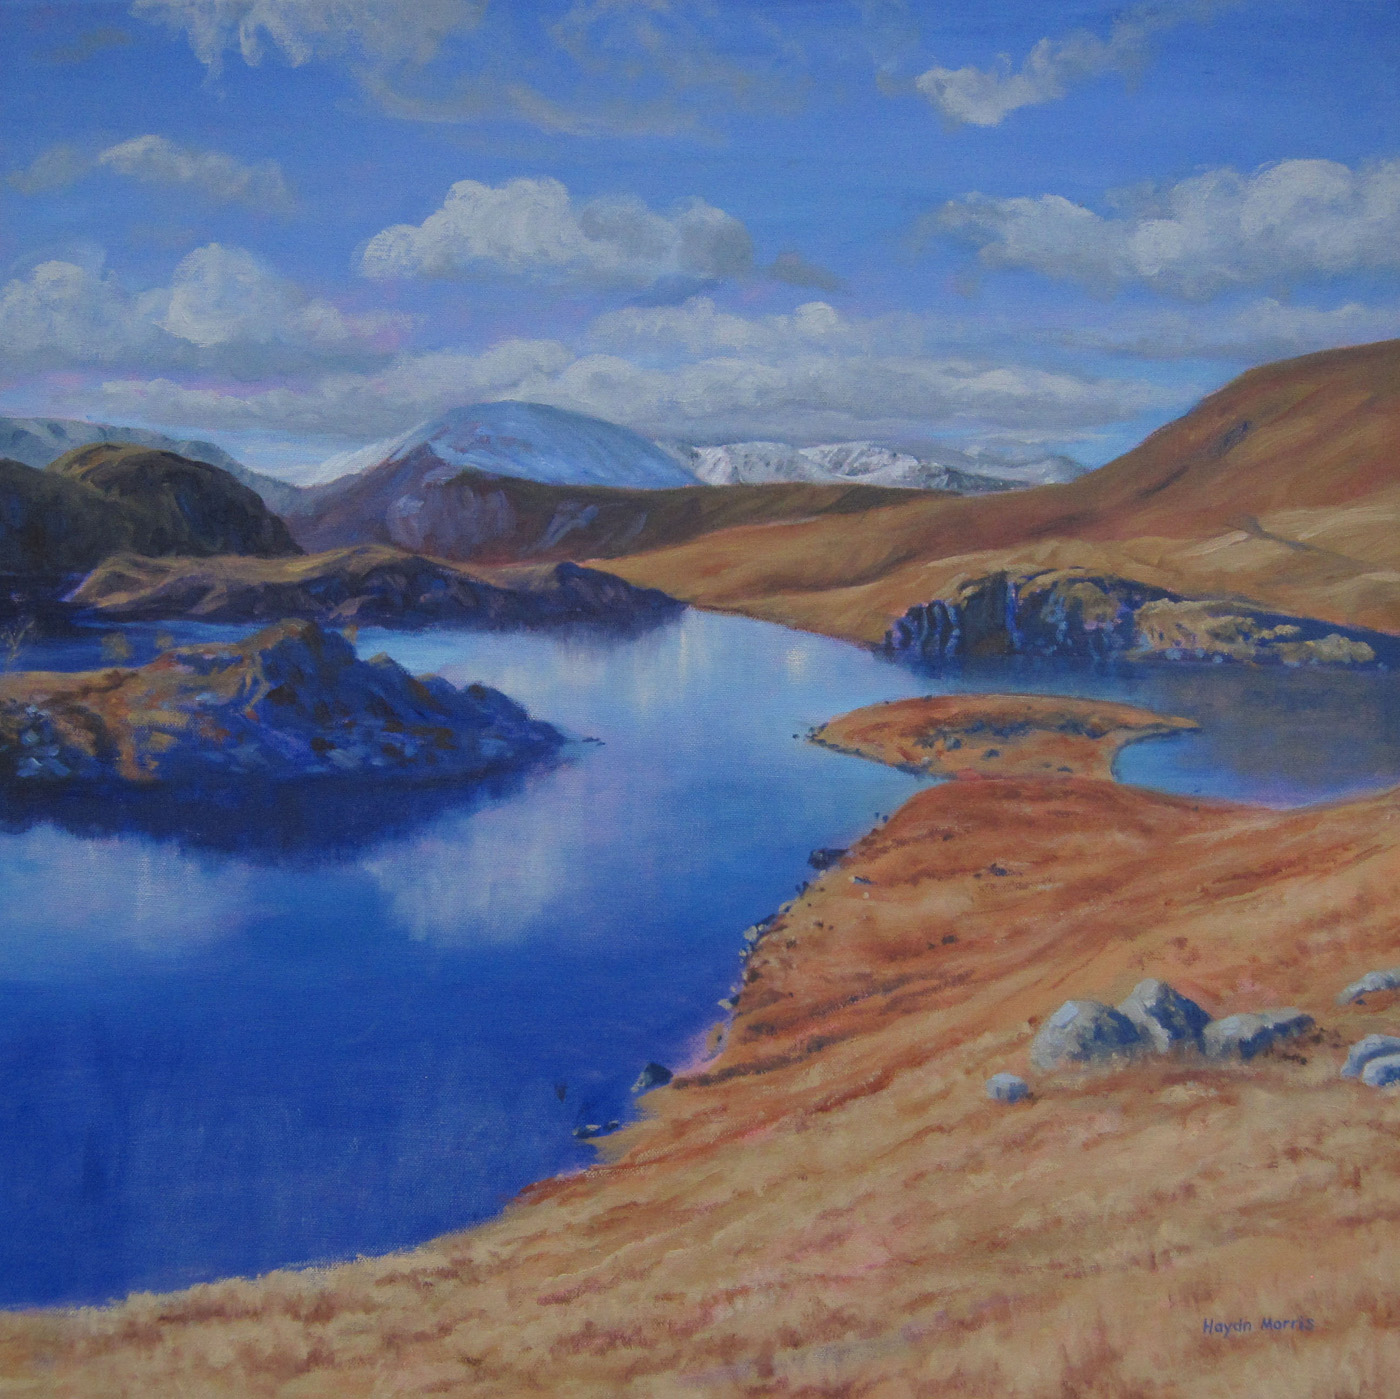 Angle Tarn, Winter, oil on canvas, 60x60cm